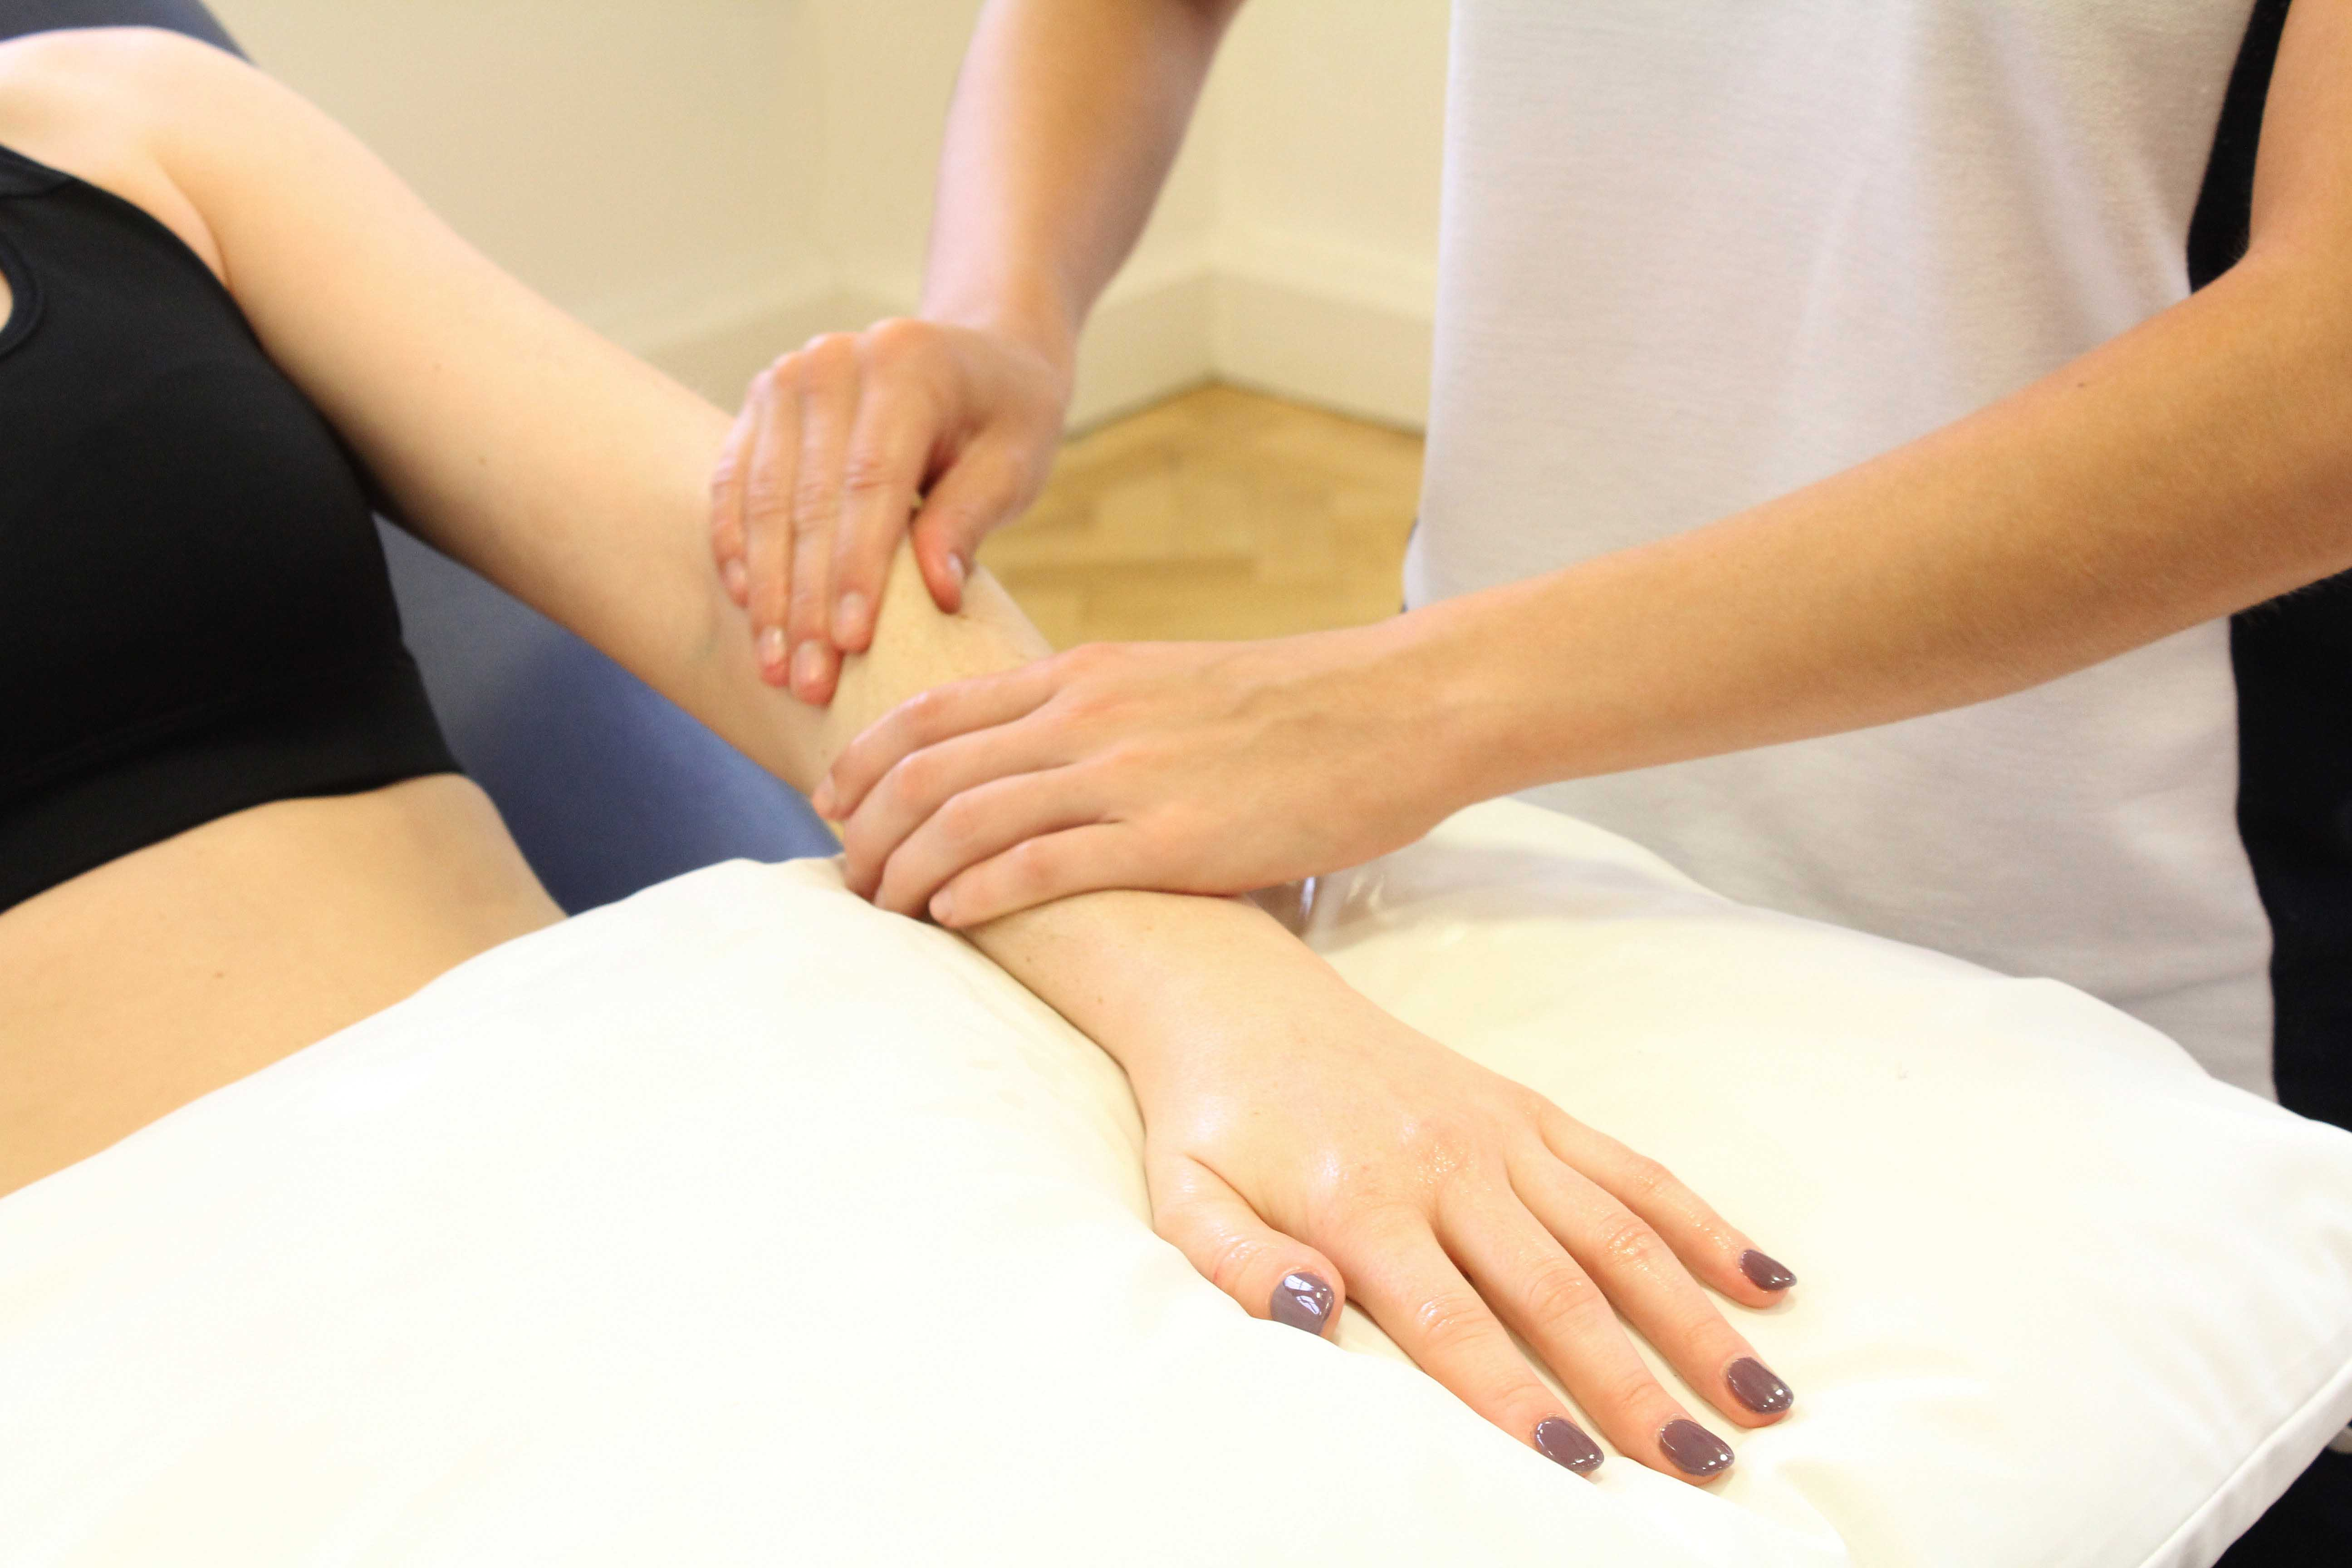 post injury massage of extensor capri ulnaris and digitorum to aid recovery.